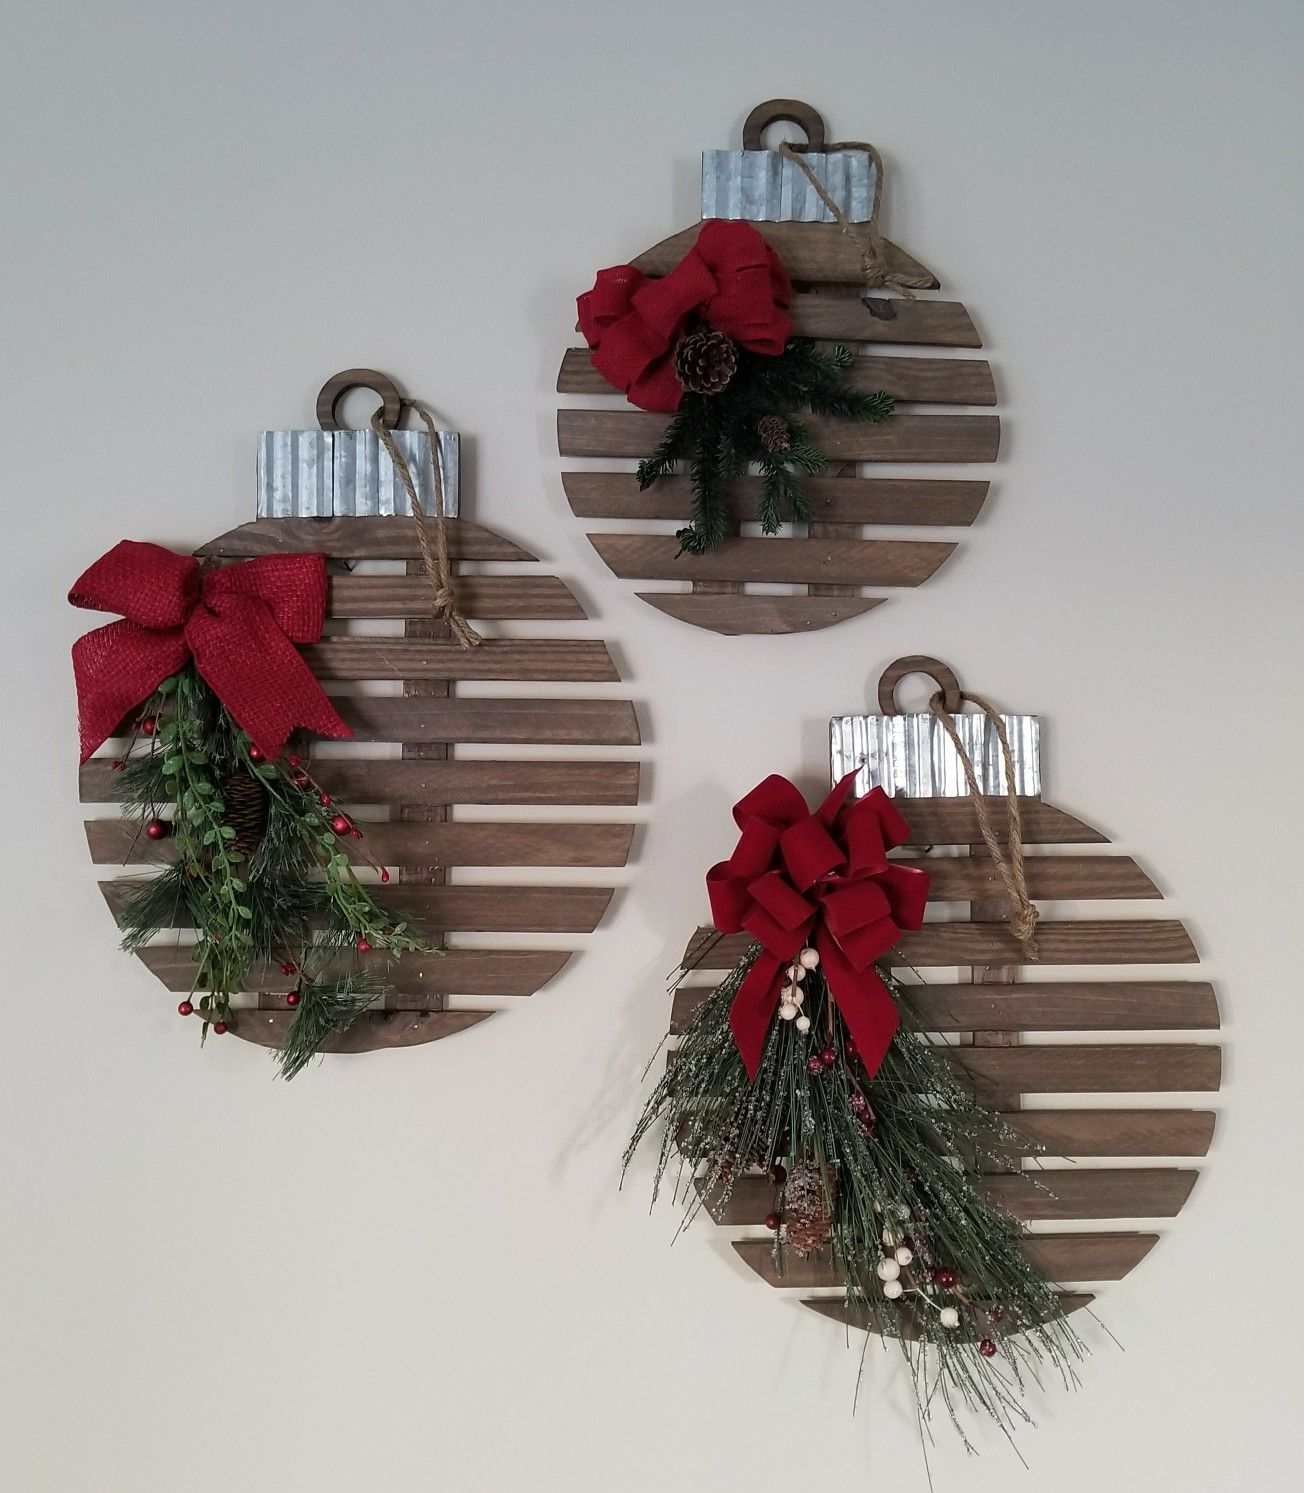 Pin by vickie lee on vica pinterest pallets ornament and holidays